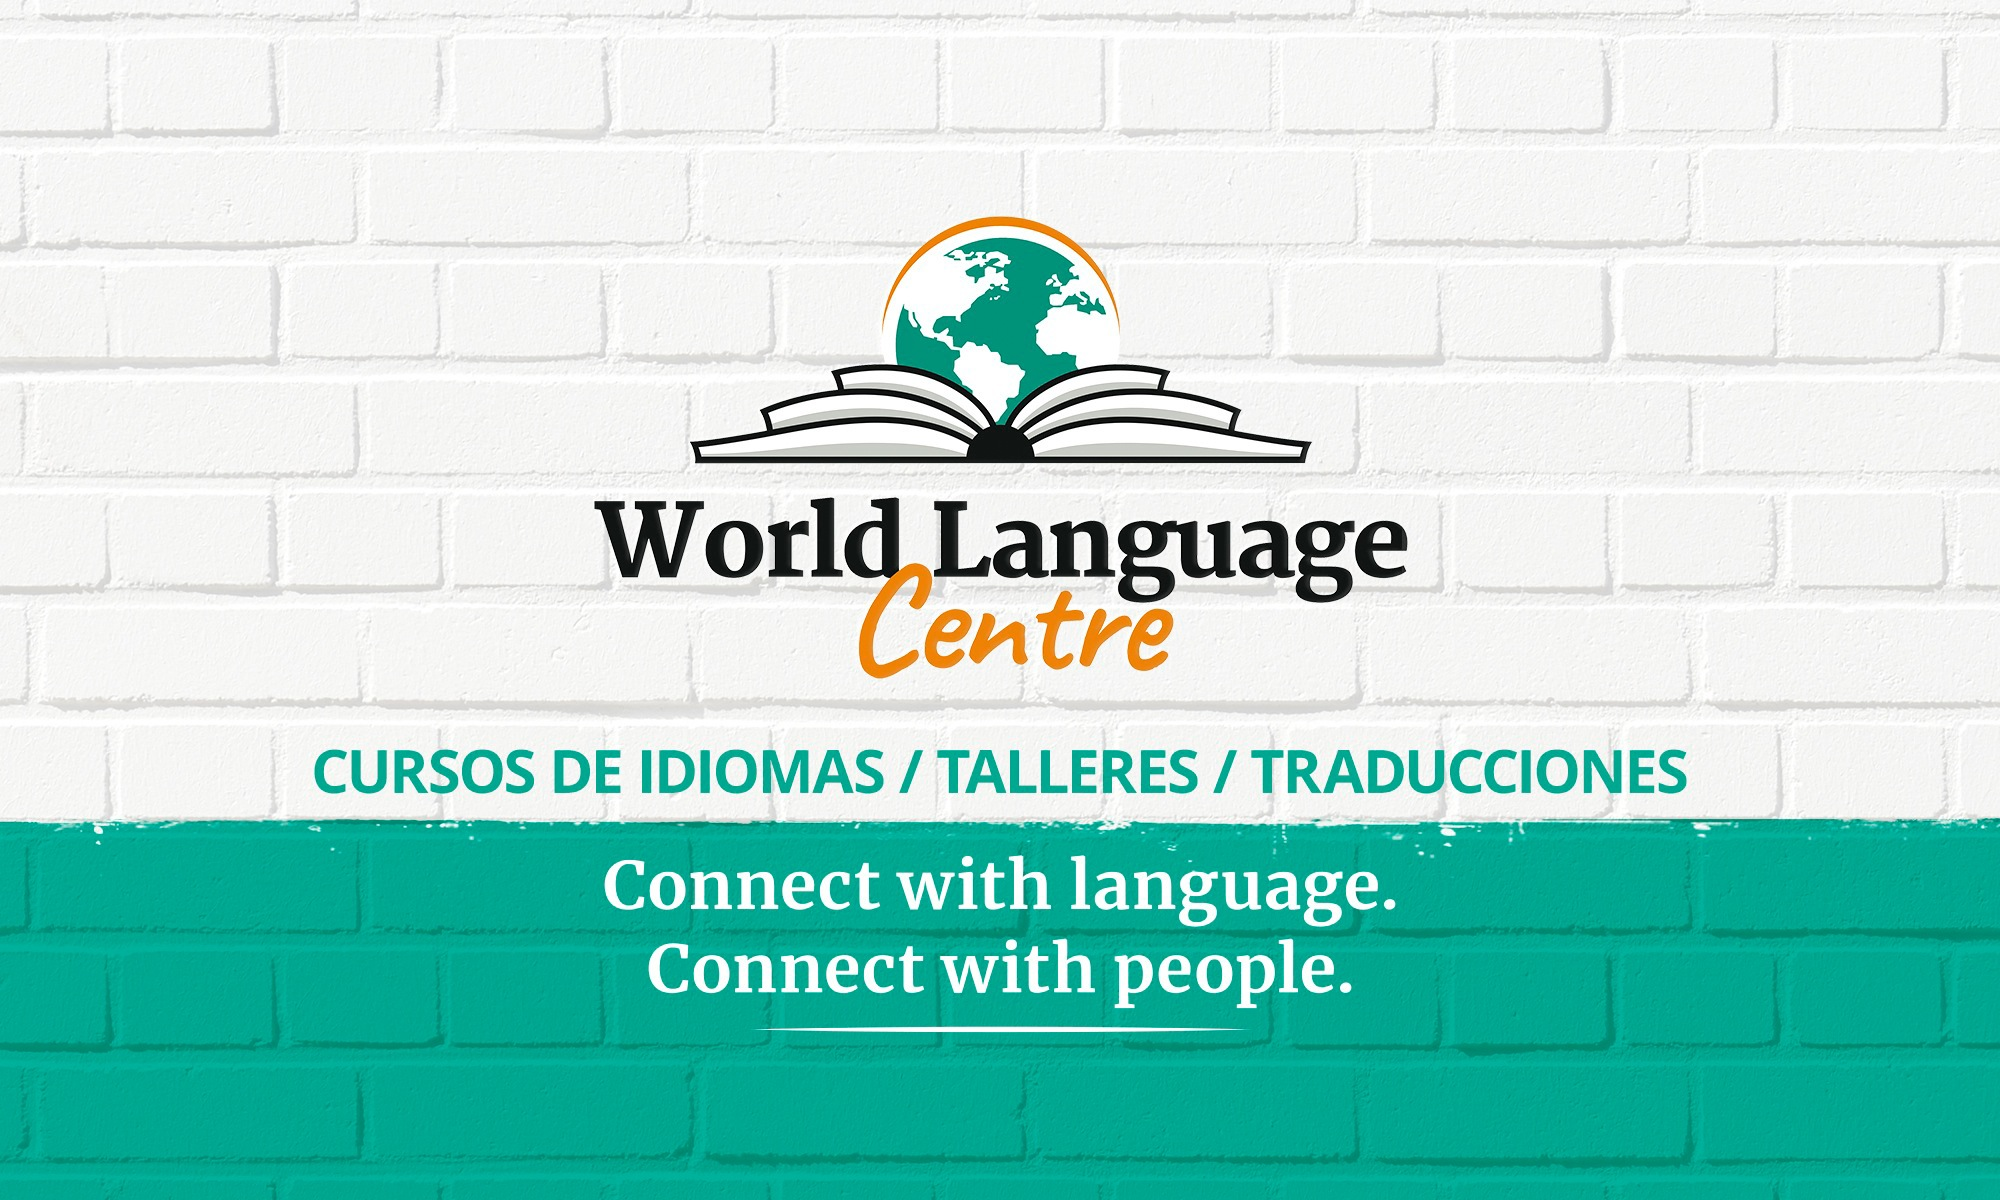 World Language Centre - Cursos de Idiomas